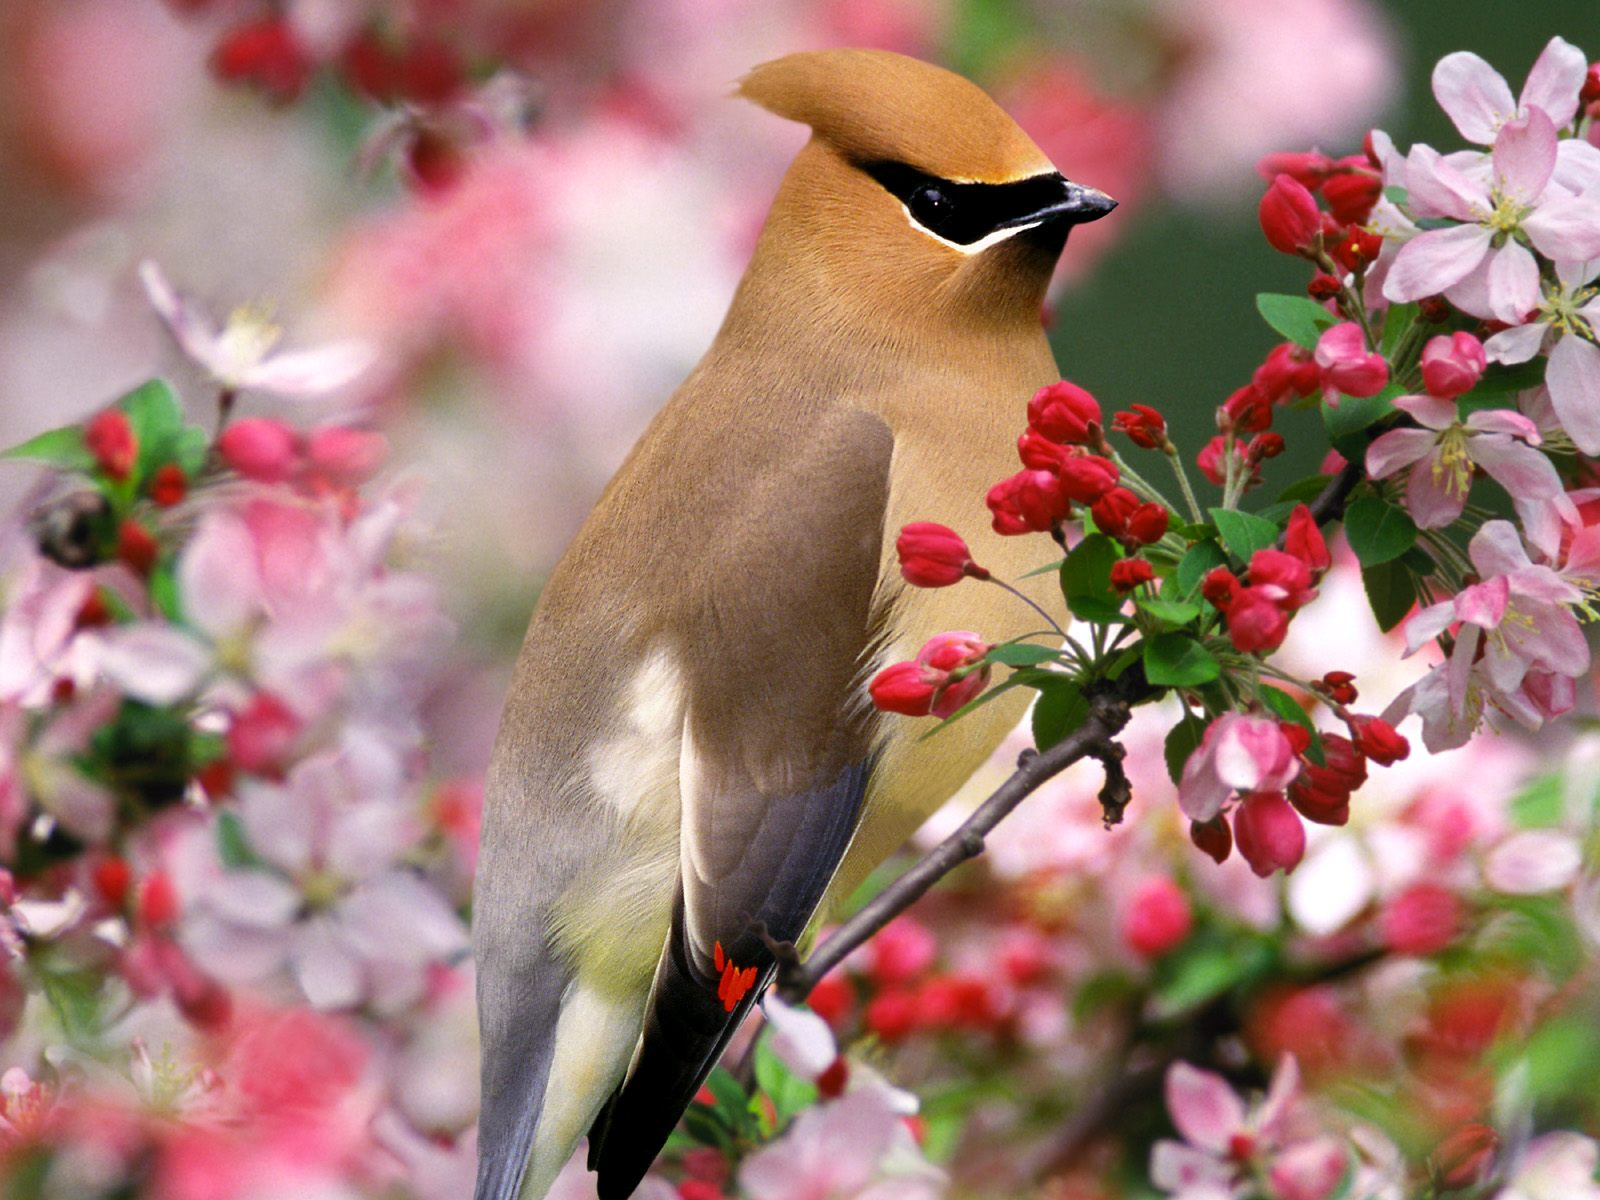 flowers for flower lovers.: flowers desktop wallpapers with small birds.